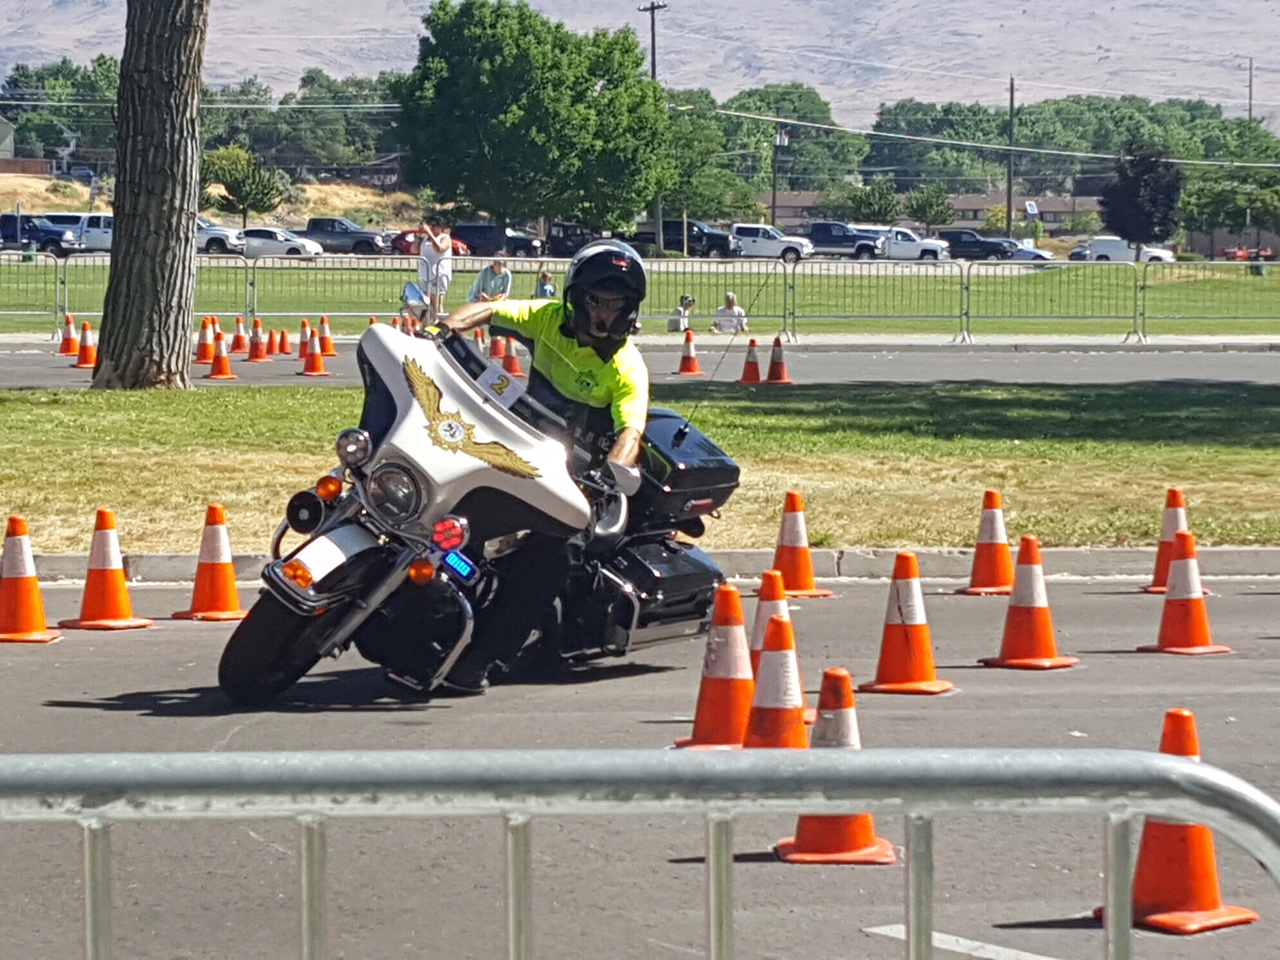 Extreme Motor Officer Training Challenge